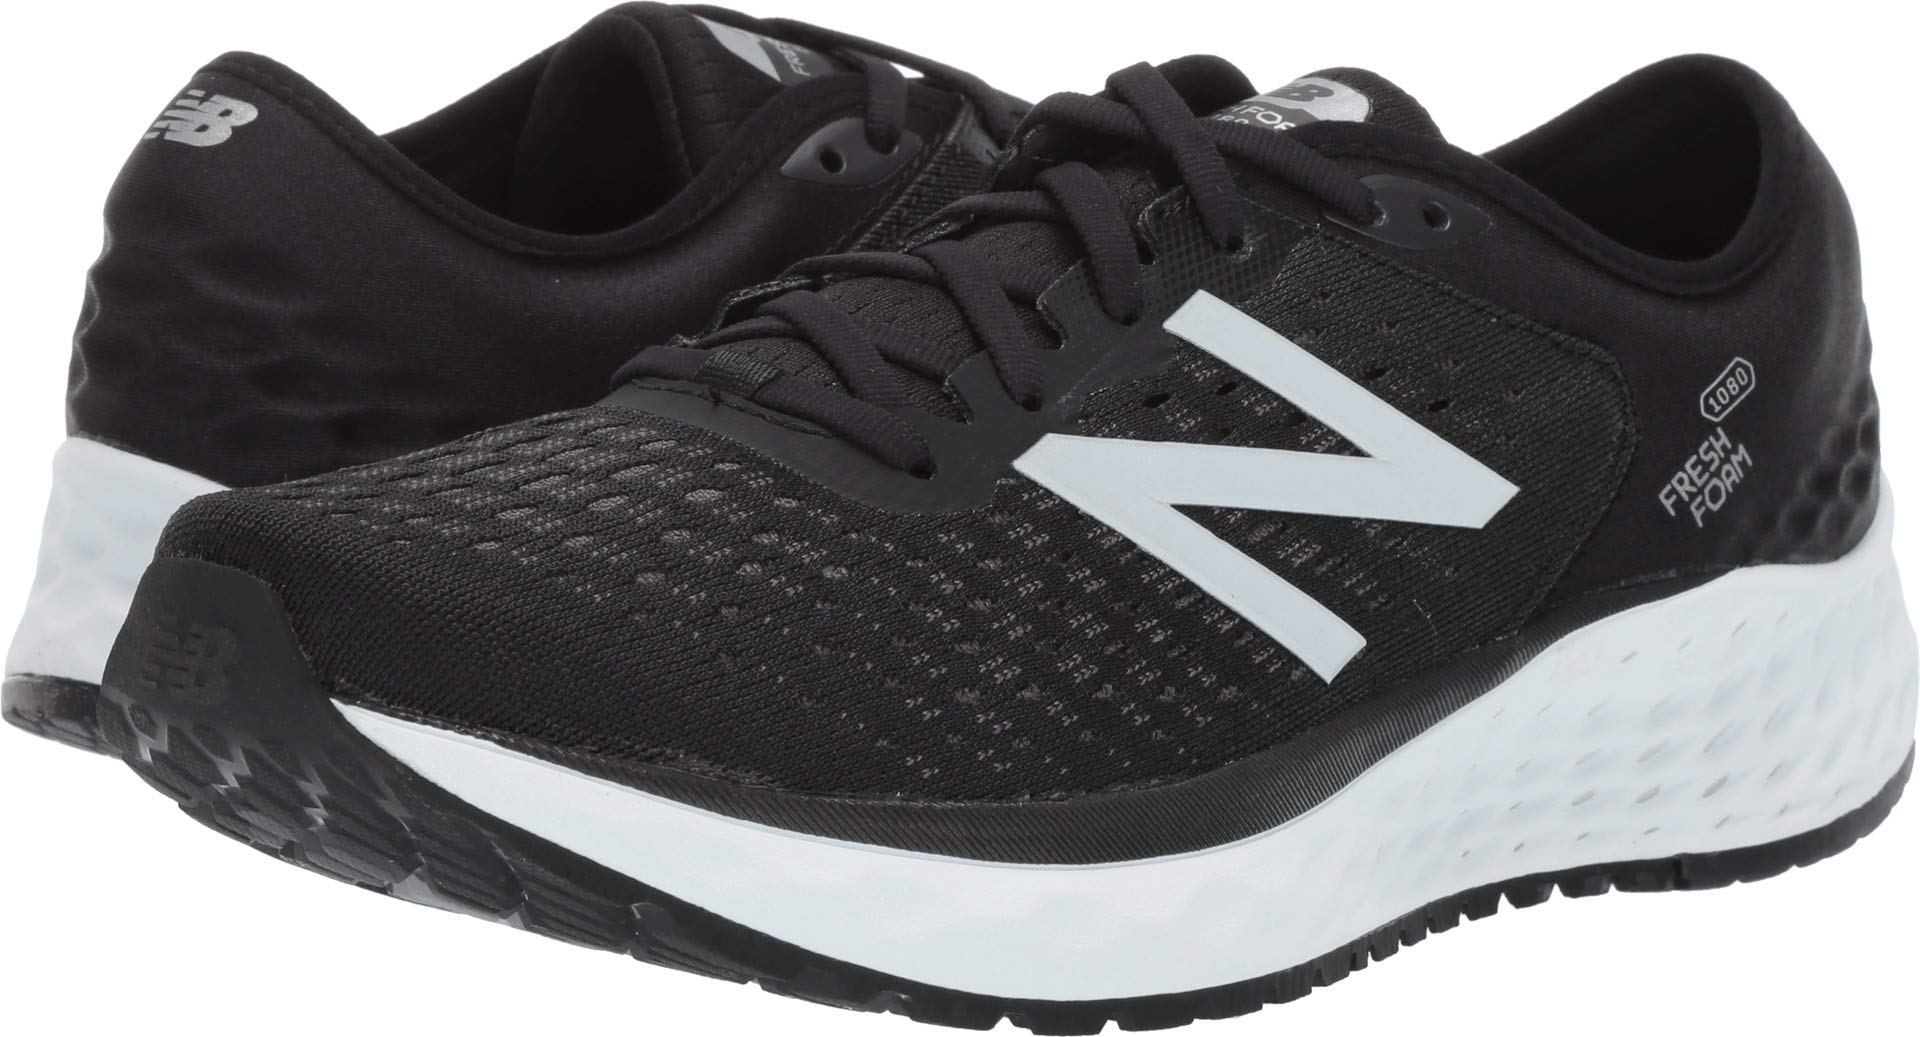 New Balance Men's 1080v9 Fresh Foam Running Shoe, Black/White, 7 W US by New Balance (Image #1)